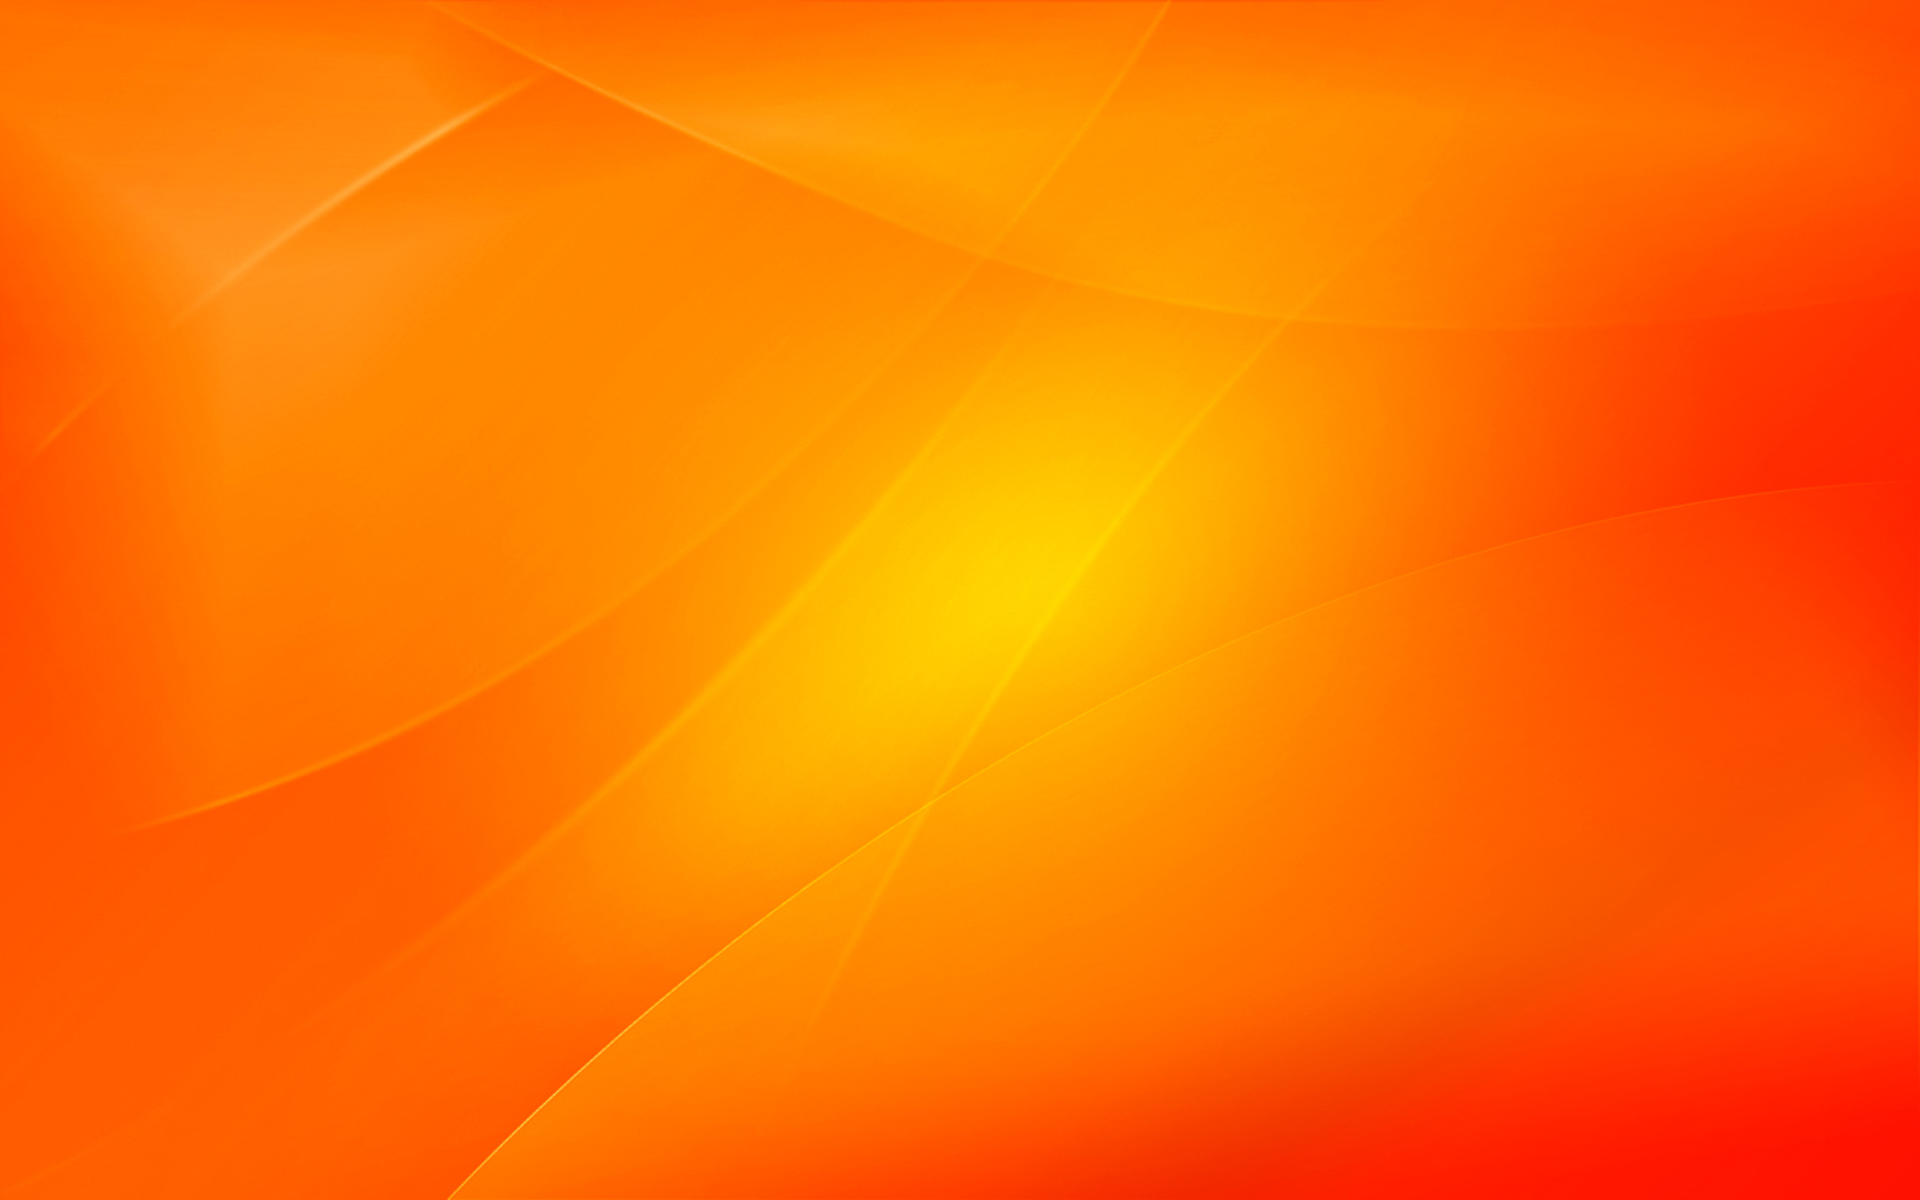 Download Orange Background Wallpaper 1920x1200 Wallpoper 1920x1200